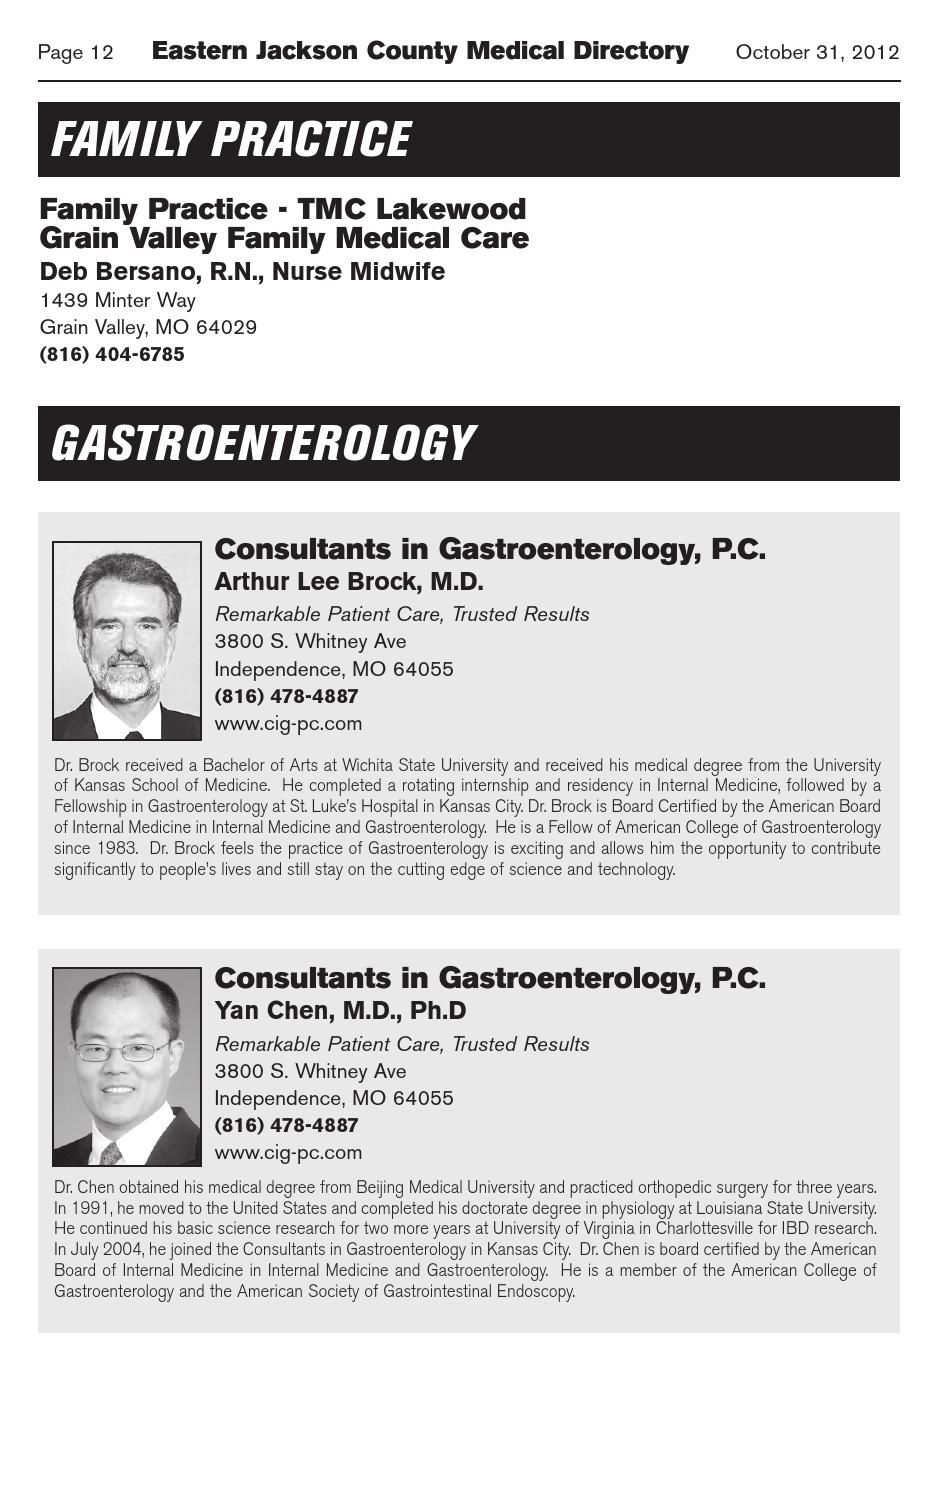 Eastern Jackson County Medical Directory 2012-13 by The